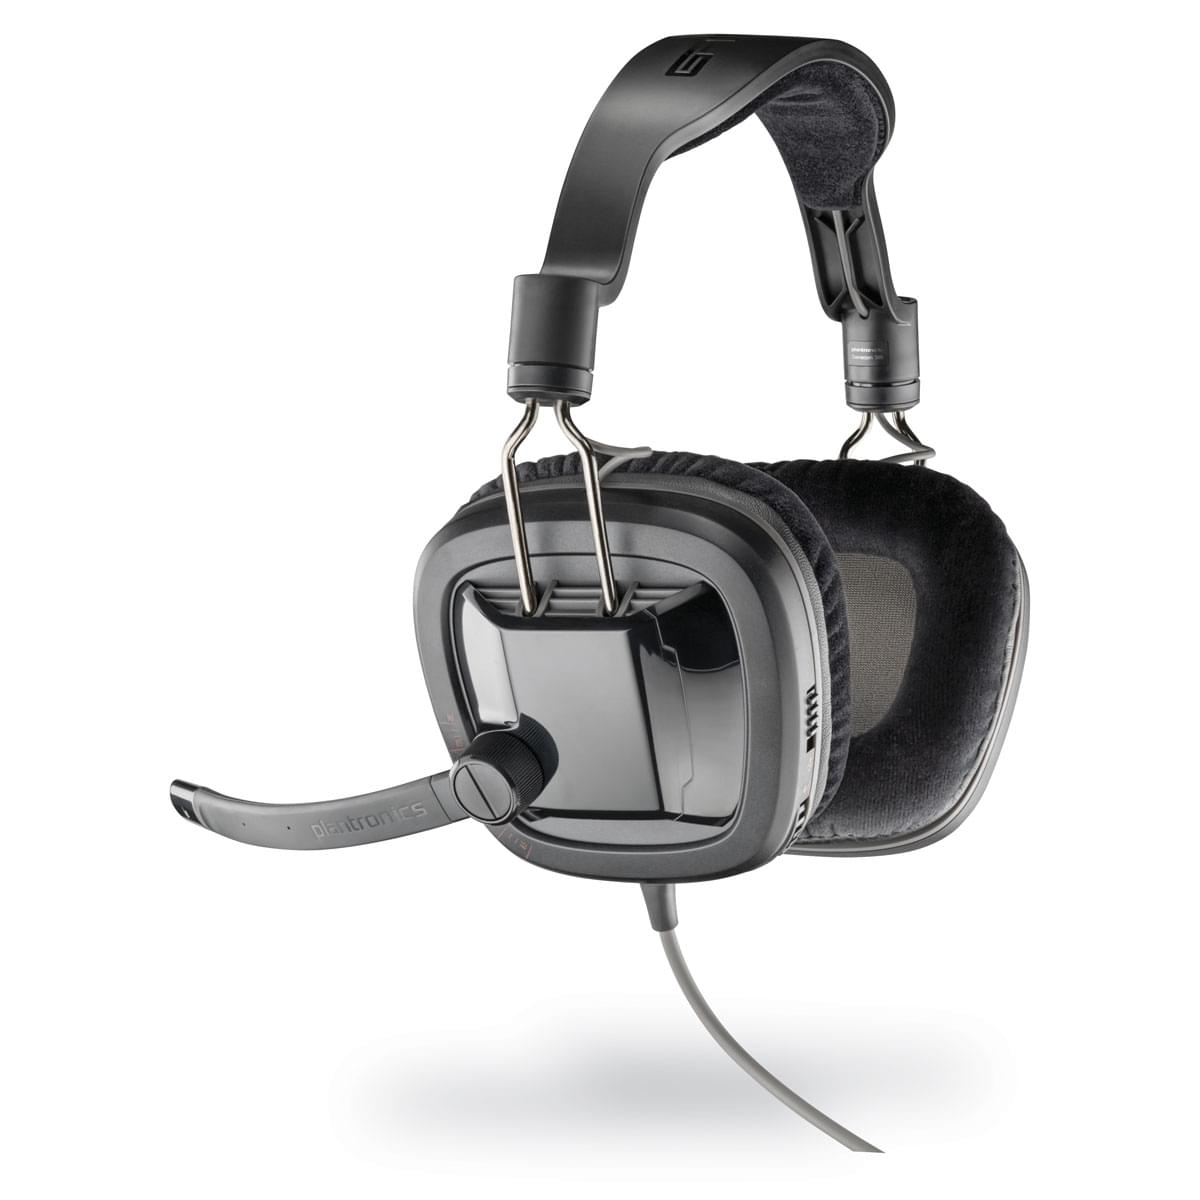 Plantronics Gamecom 380 + Trackmania Canyon (86050-05 obso) - Achat / Vente Micro-casque sur Cybertek.fr - 0